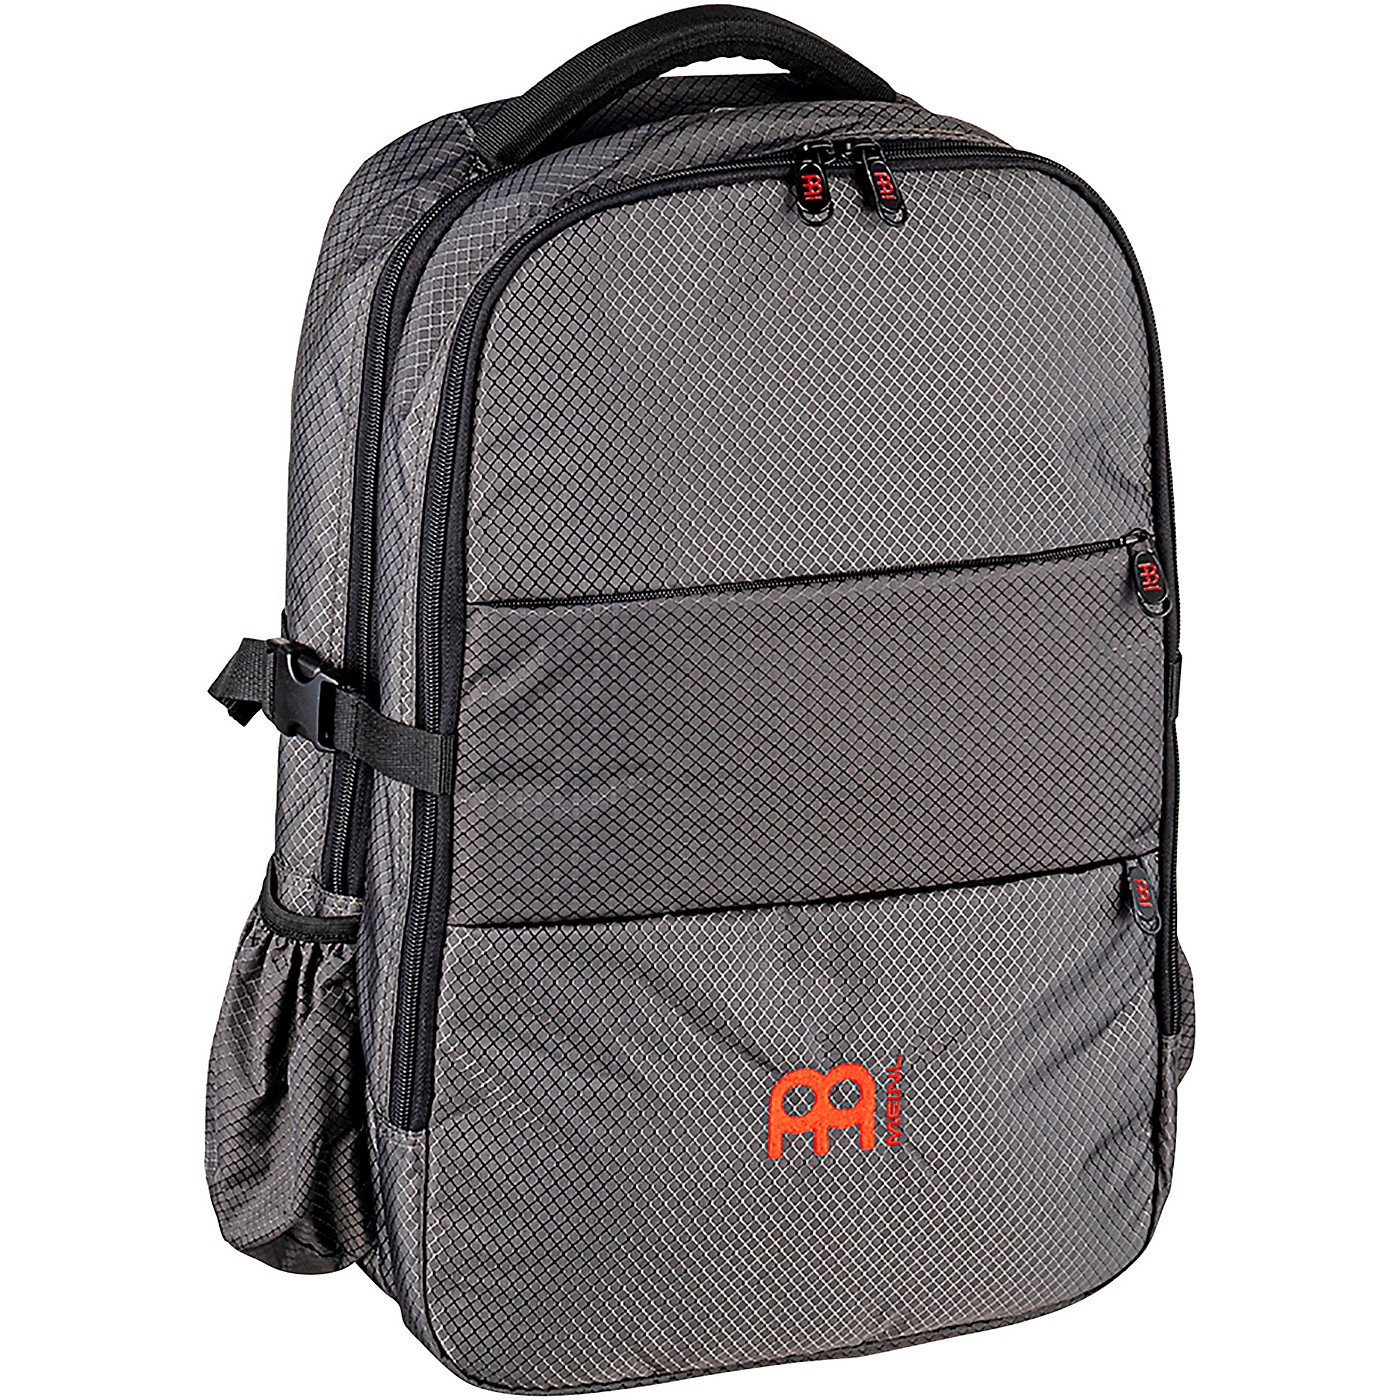 Meinl Percussion Backpack thumbnail